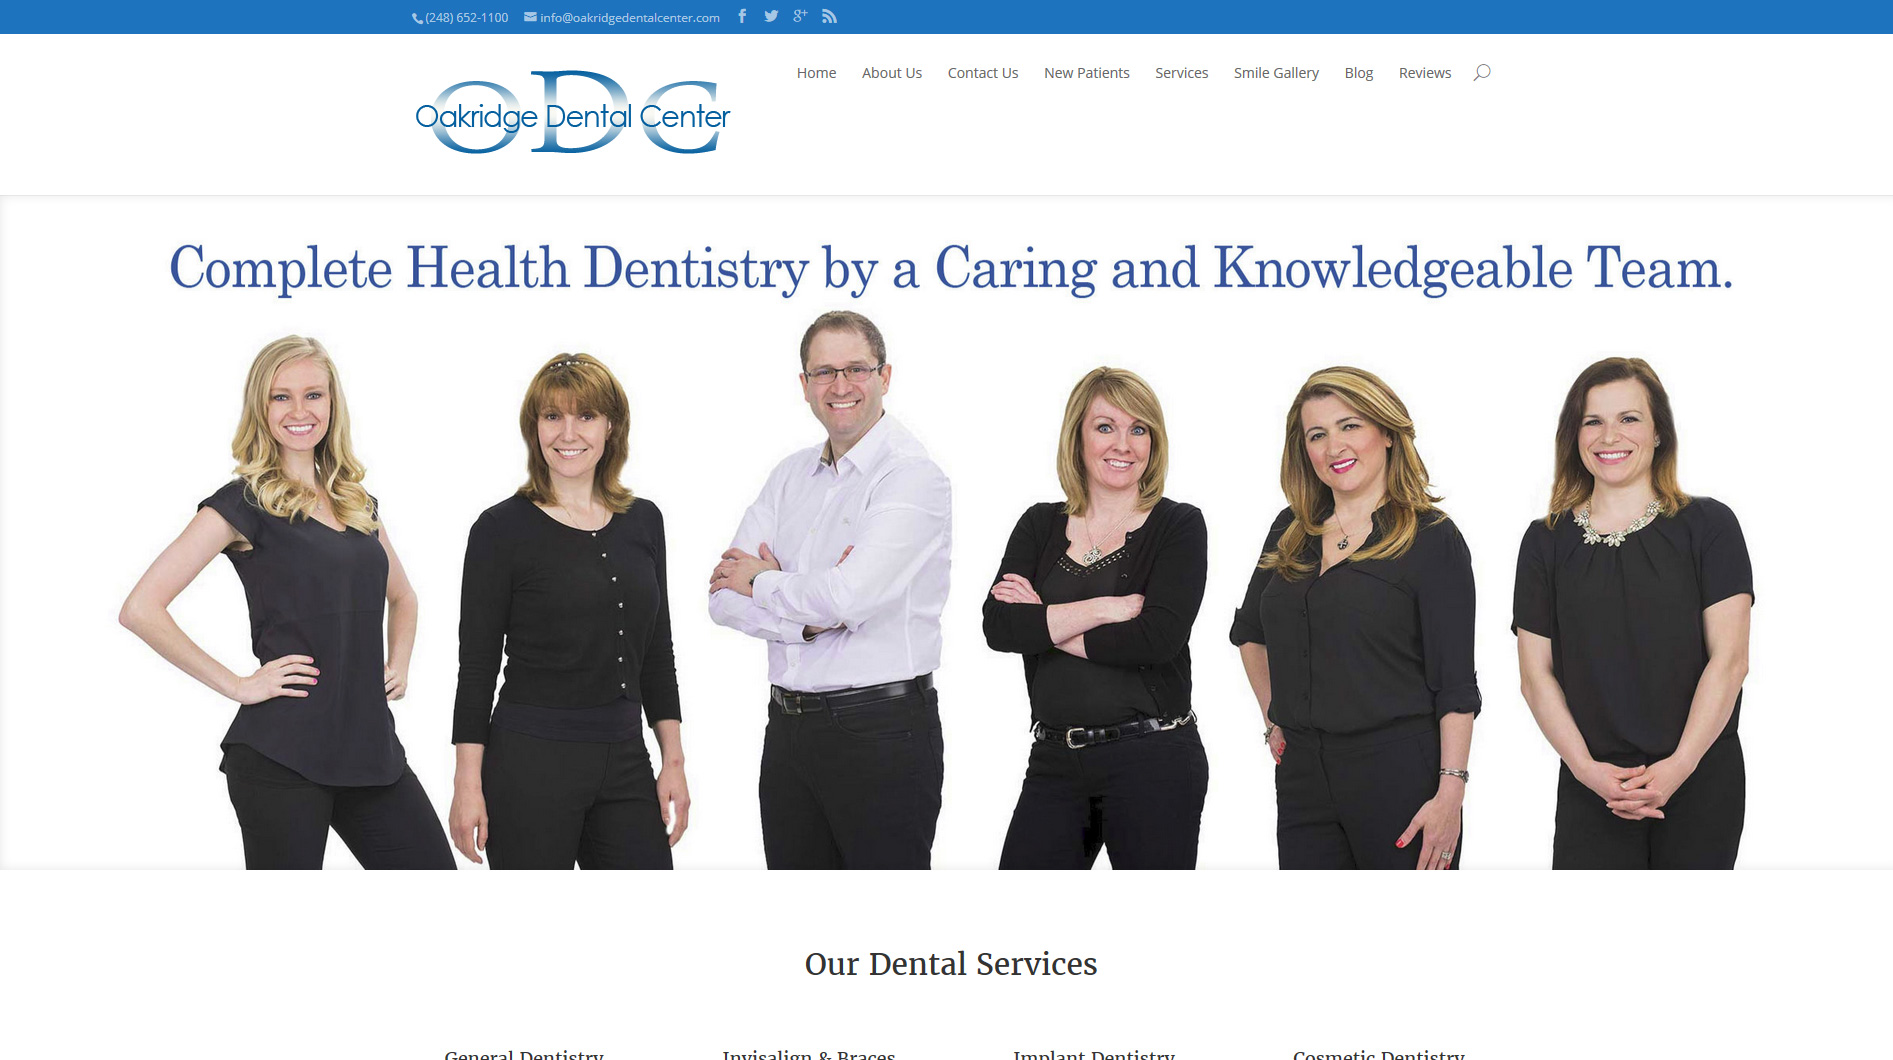 Oakridge Dental Center